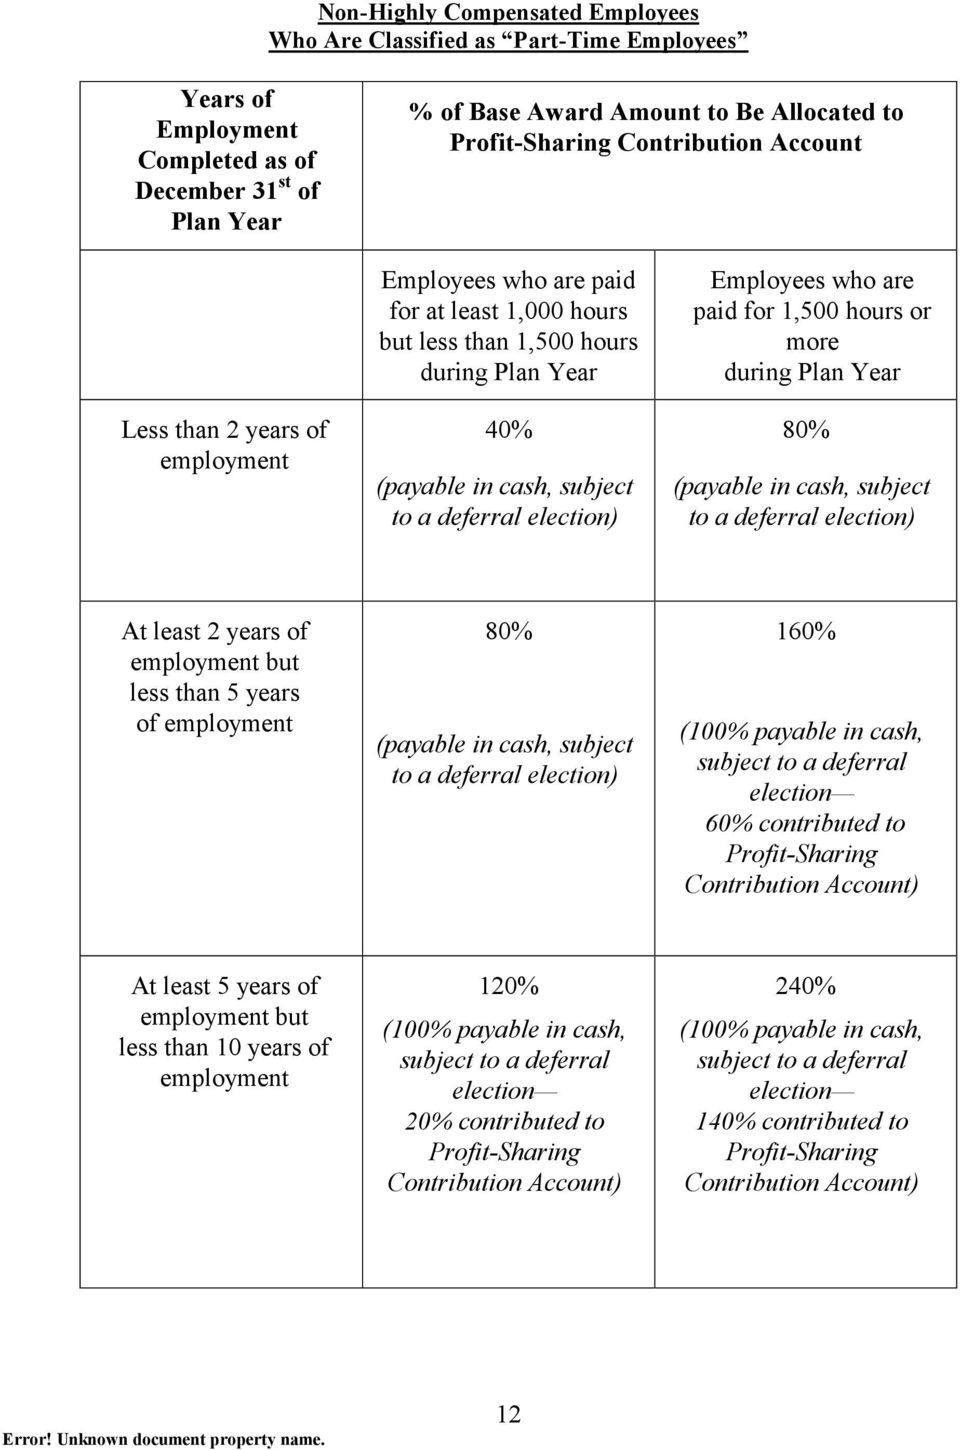 Employees who are paid for 1,500 hours or more during Plan Year 80% (payable in cash, subject to a deferral election) At least 2 years of employment but less than 5 years of employment 80% (payable